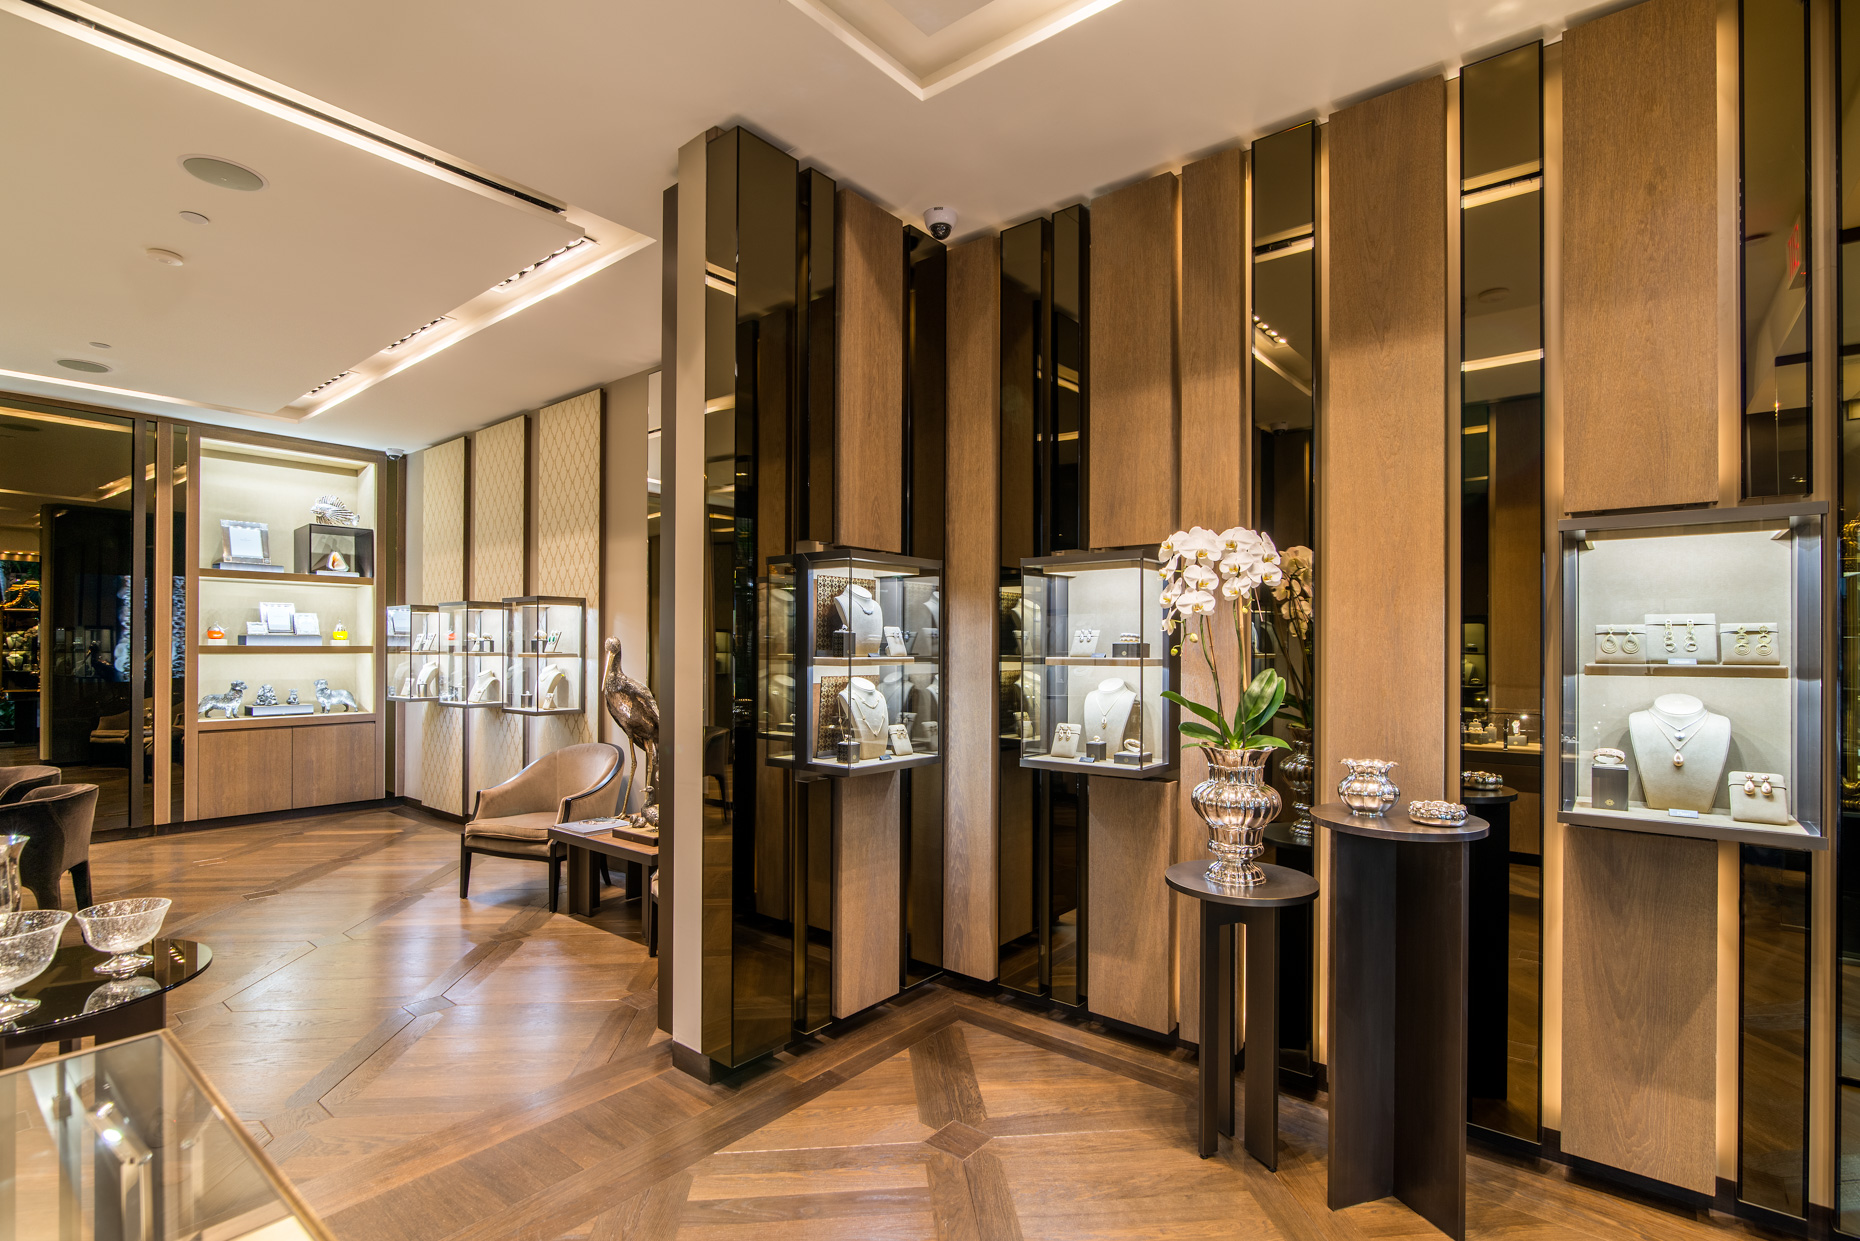 Buccellati - Retail store interior photography